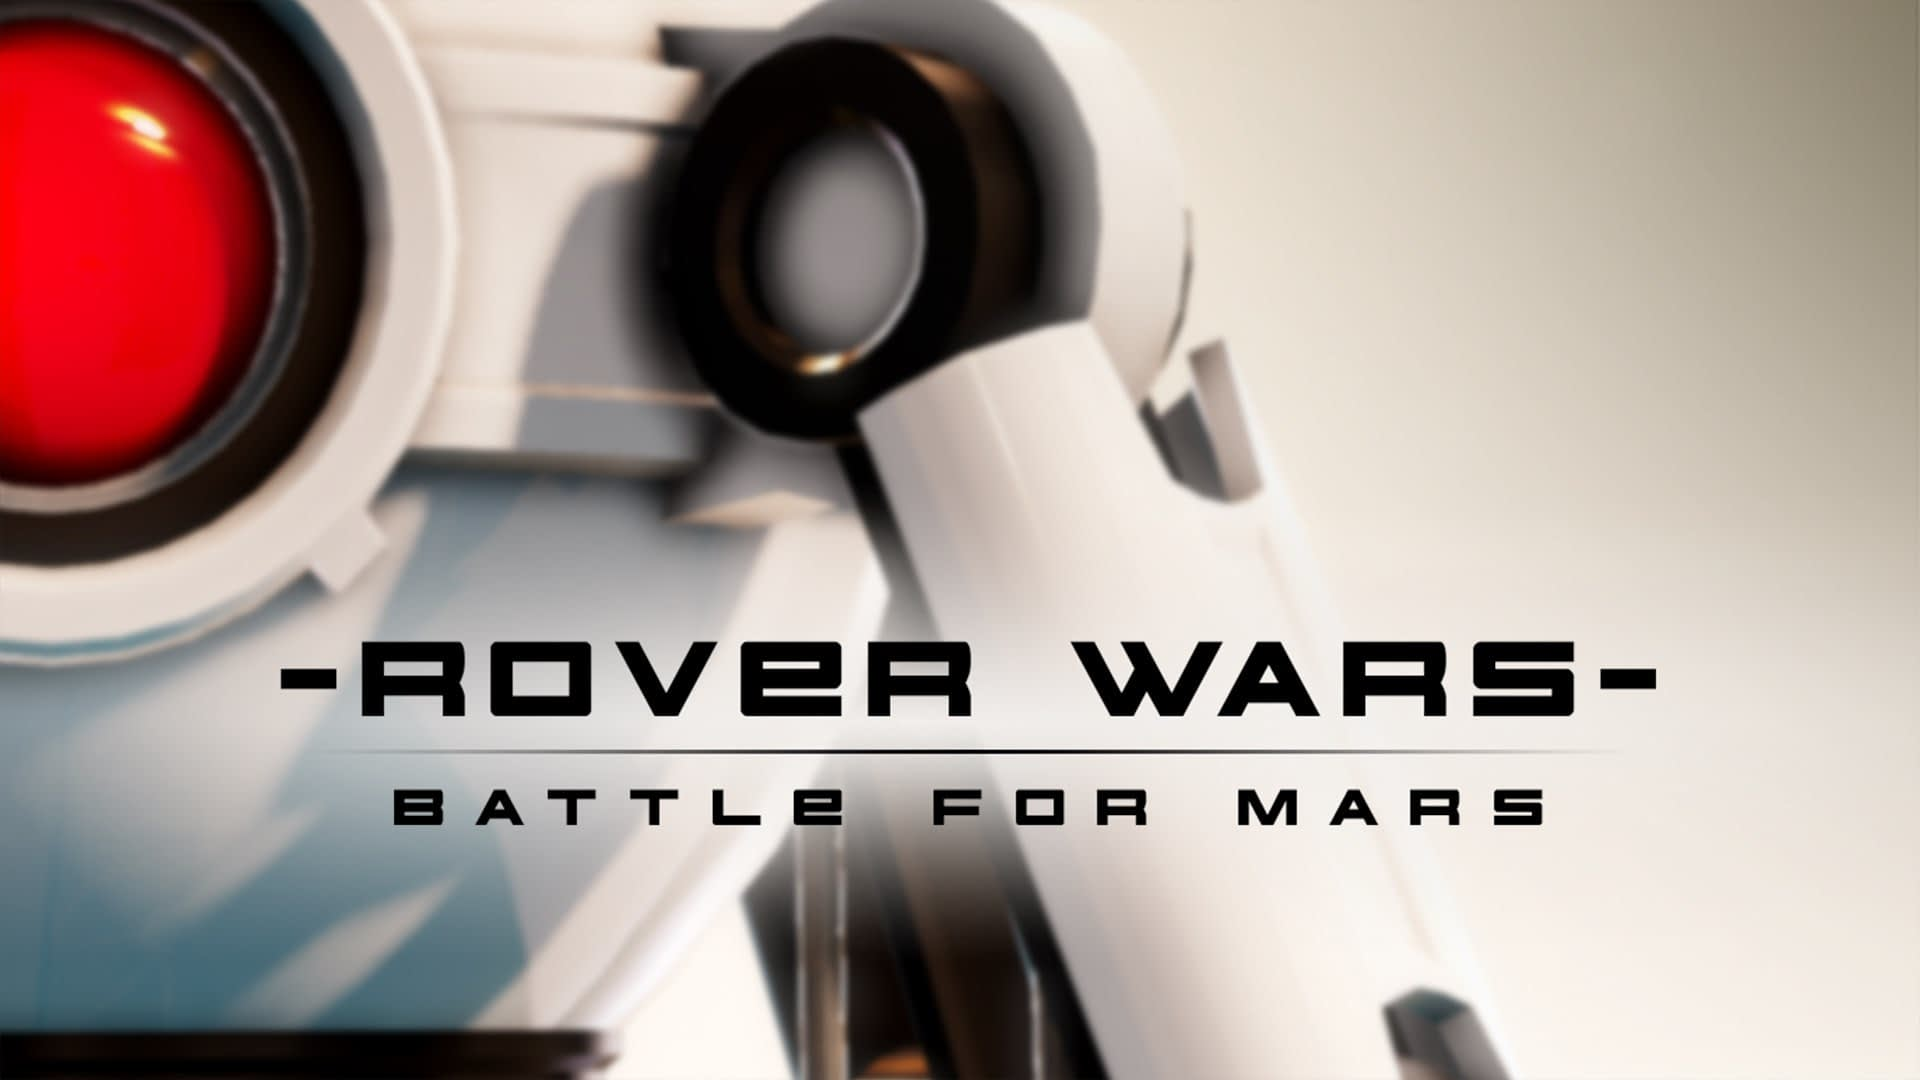 Rover Wars : Battle For Mars Is Now Available For Xbox One And Xbox Series X|S 1